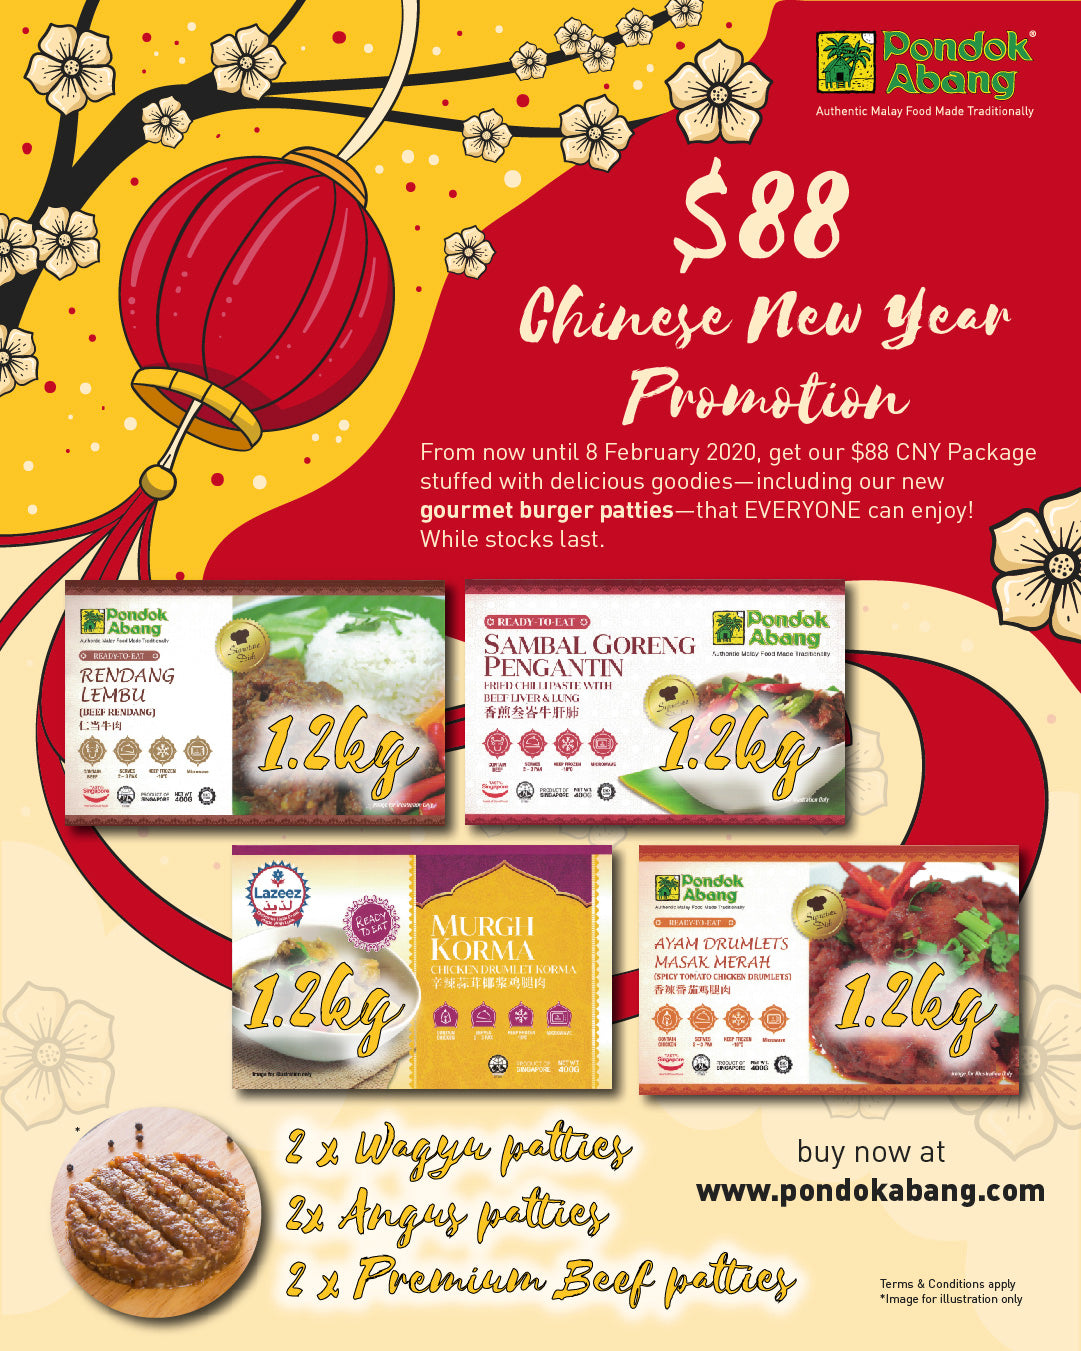 $88 Chinese New Year Promotion